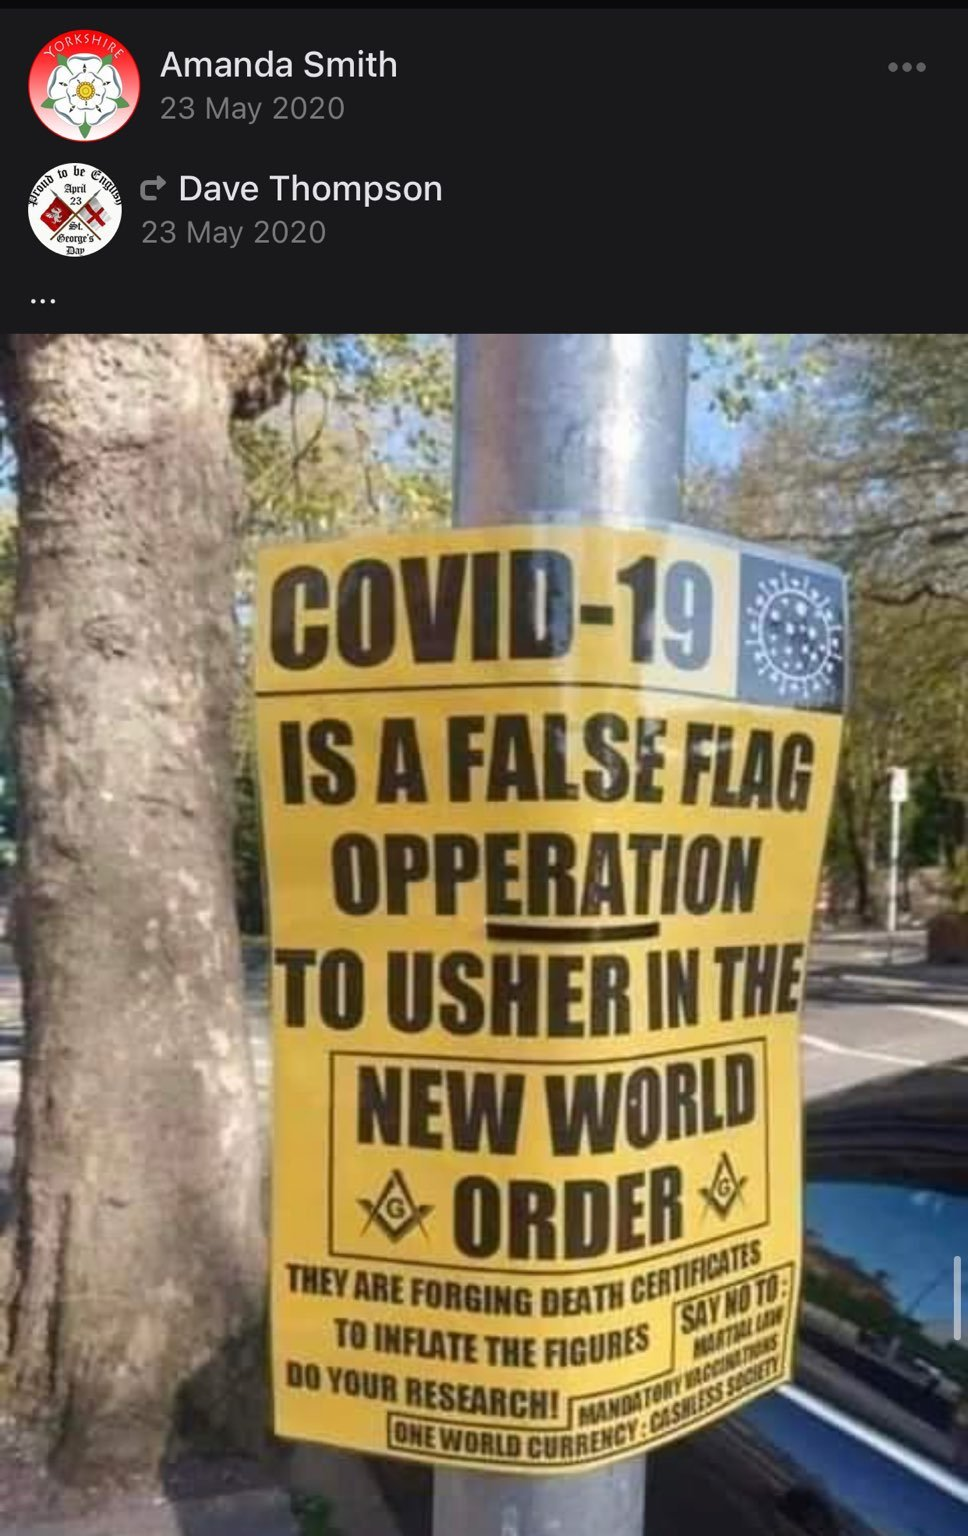 """Poster reading """"Covid-19 is a false flag operation to usher in the New World Order""""."""